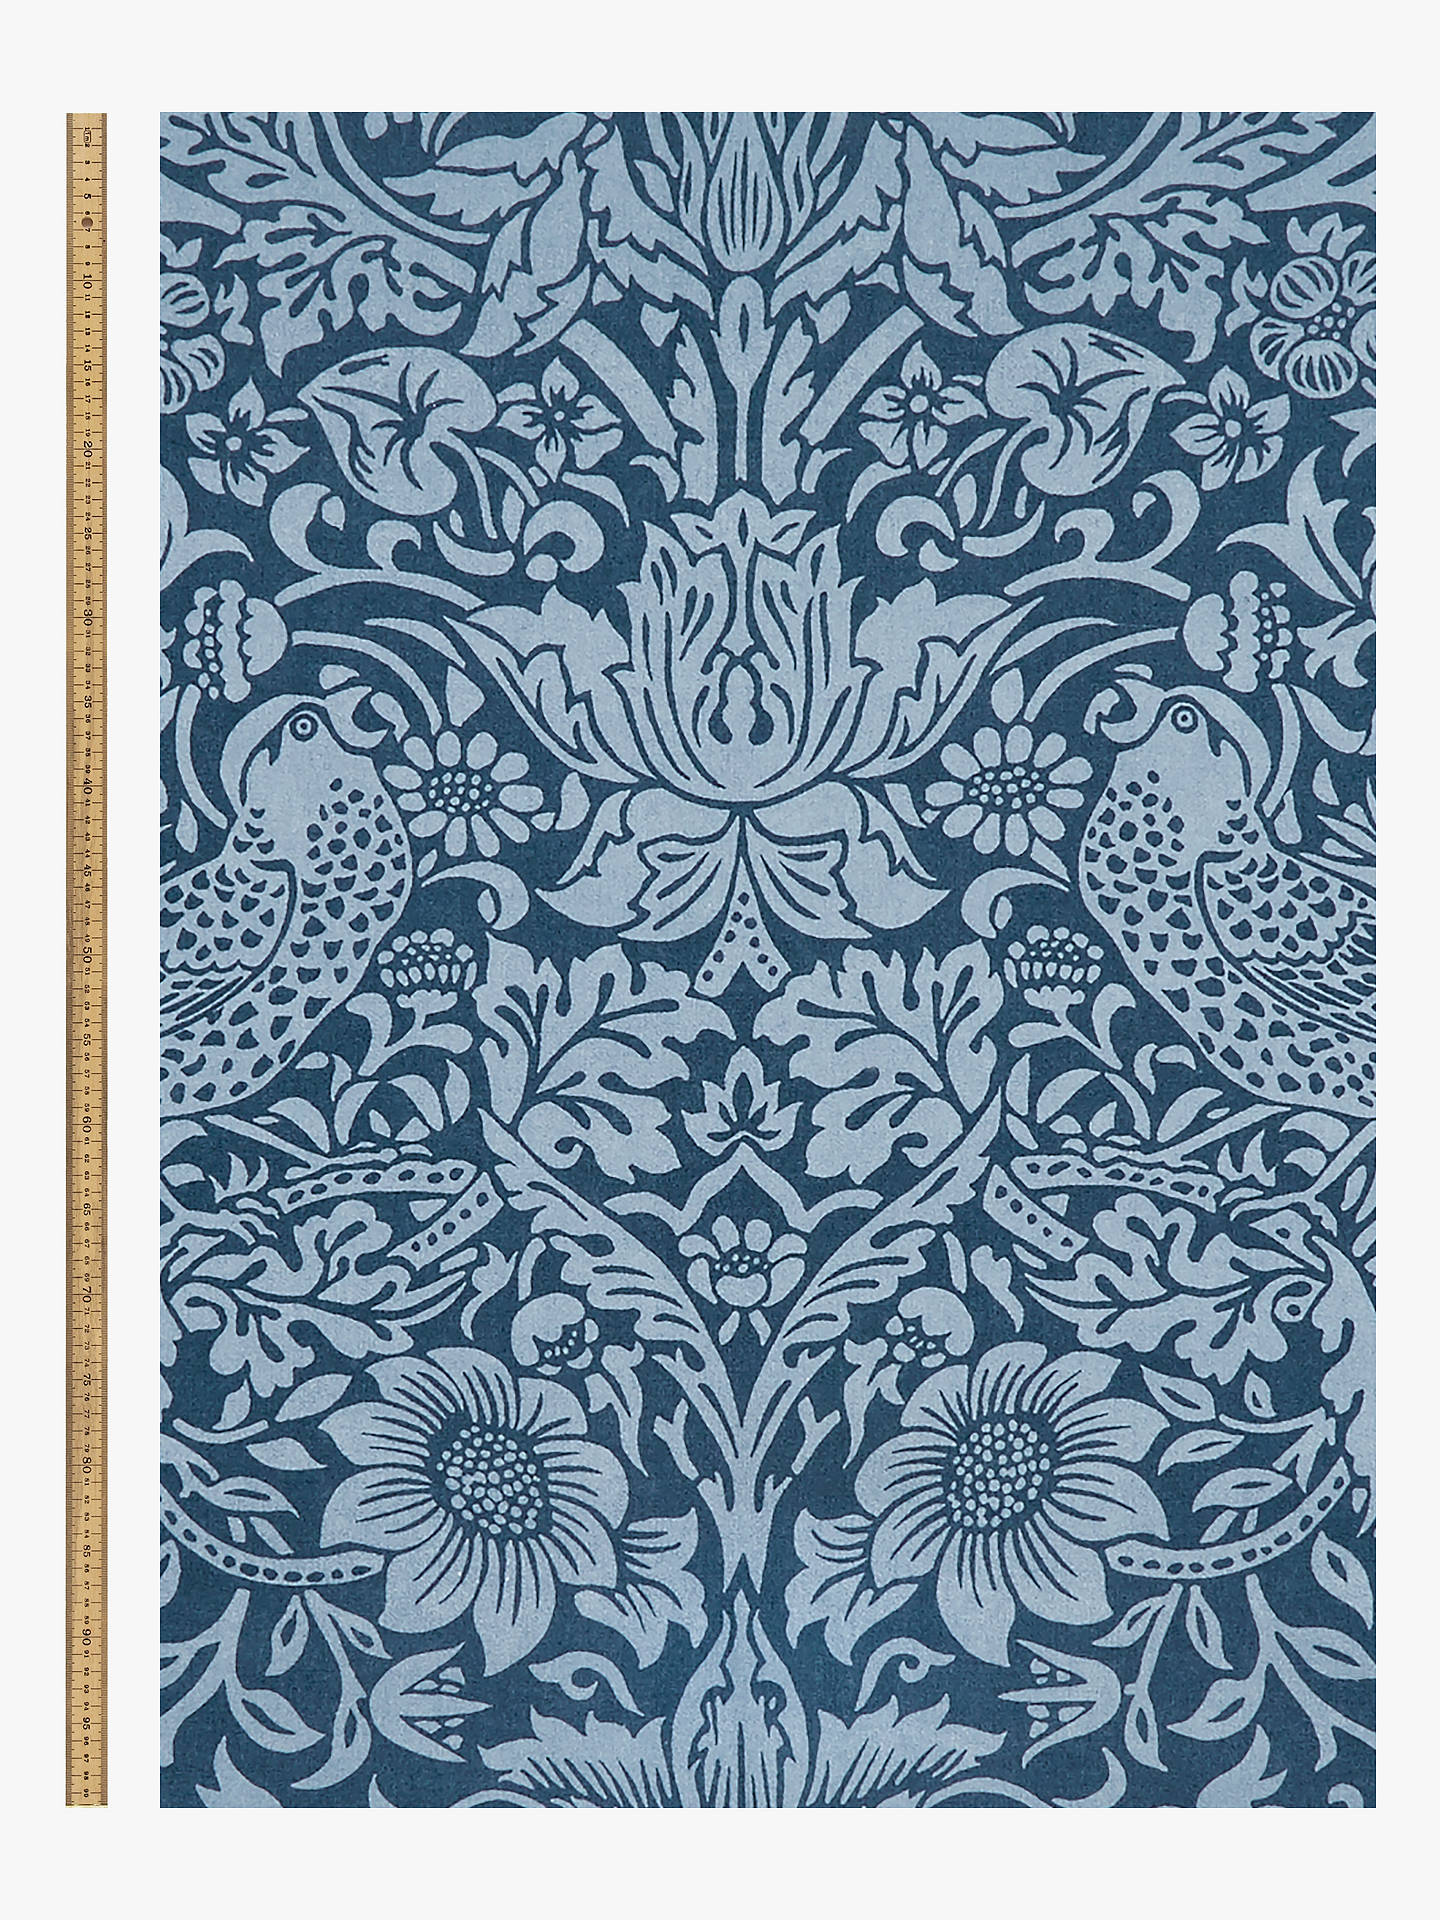 Buy Morris & Co.Thief Bird Floral Print Fabric, Navy Blue Online at johnlewis.com